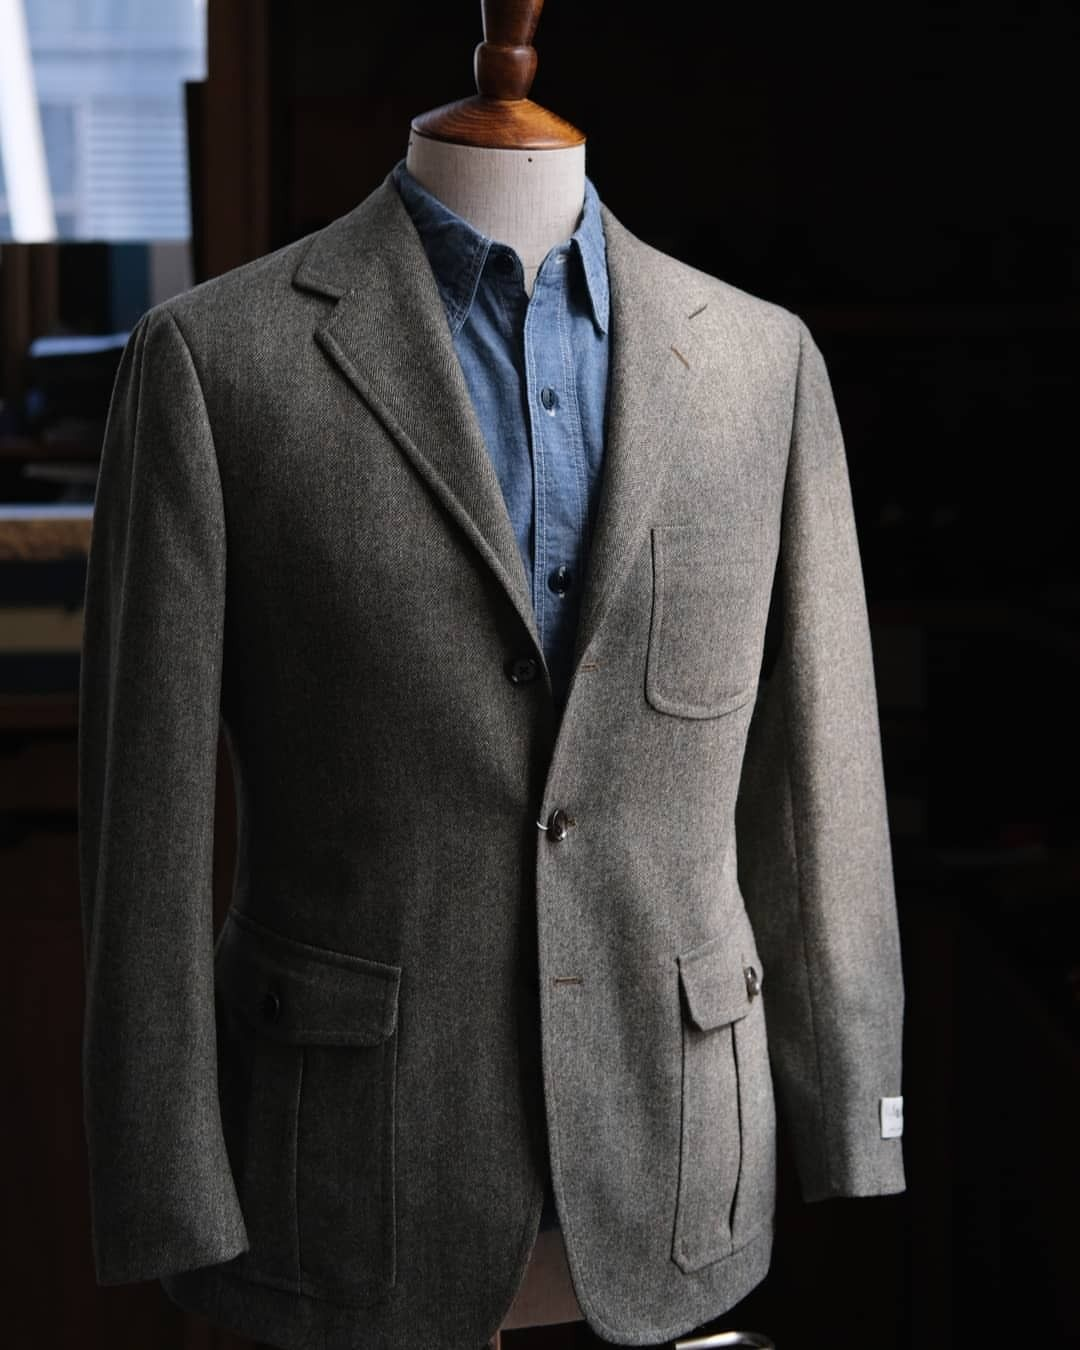 a792ba7b59e5bf Introducing our new Armoury Model 11 Sports coat made for us by  @ring_jacket . New